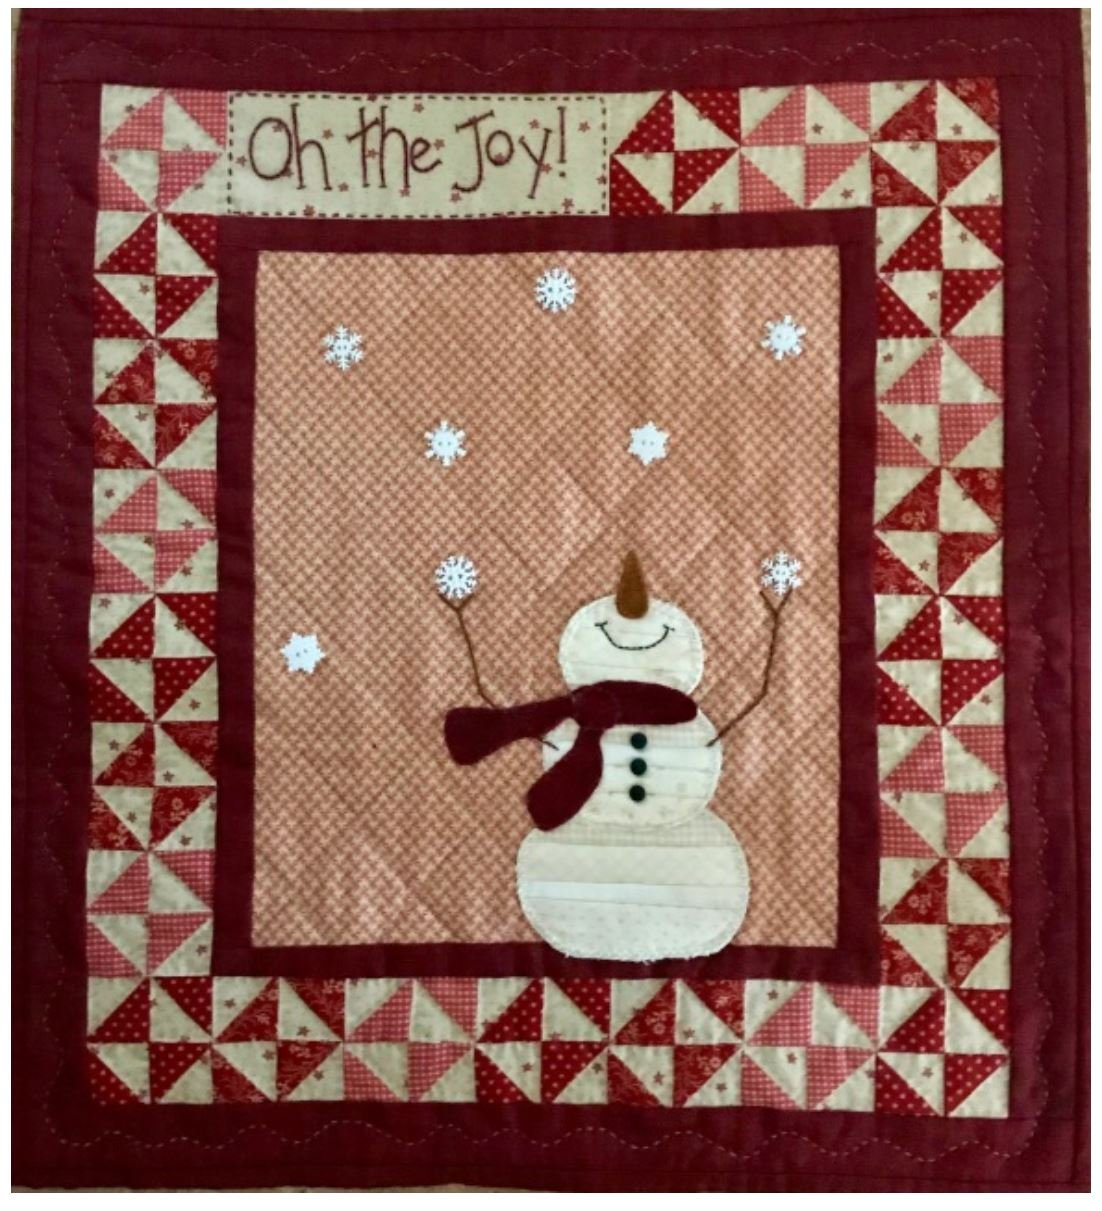 Oh the Joy!- Red Button Quilt Co.